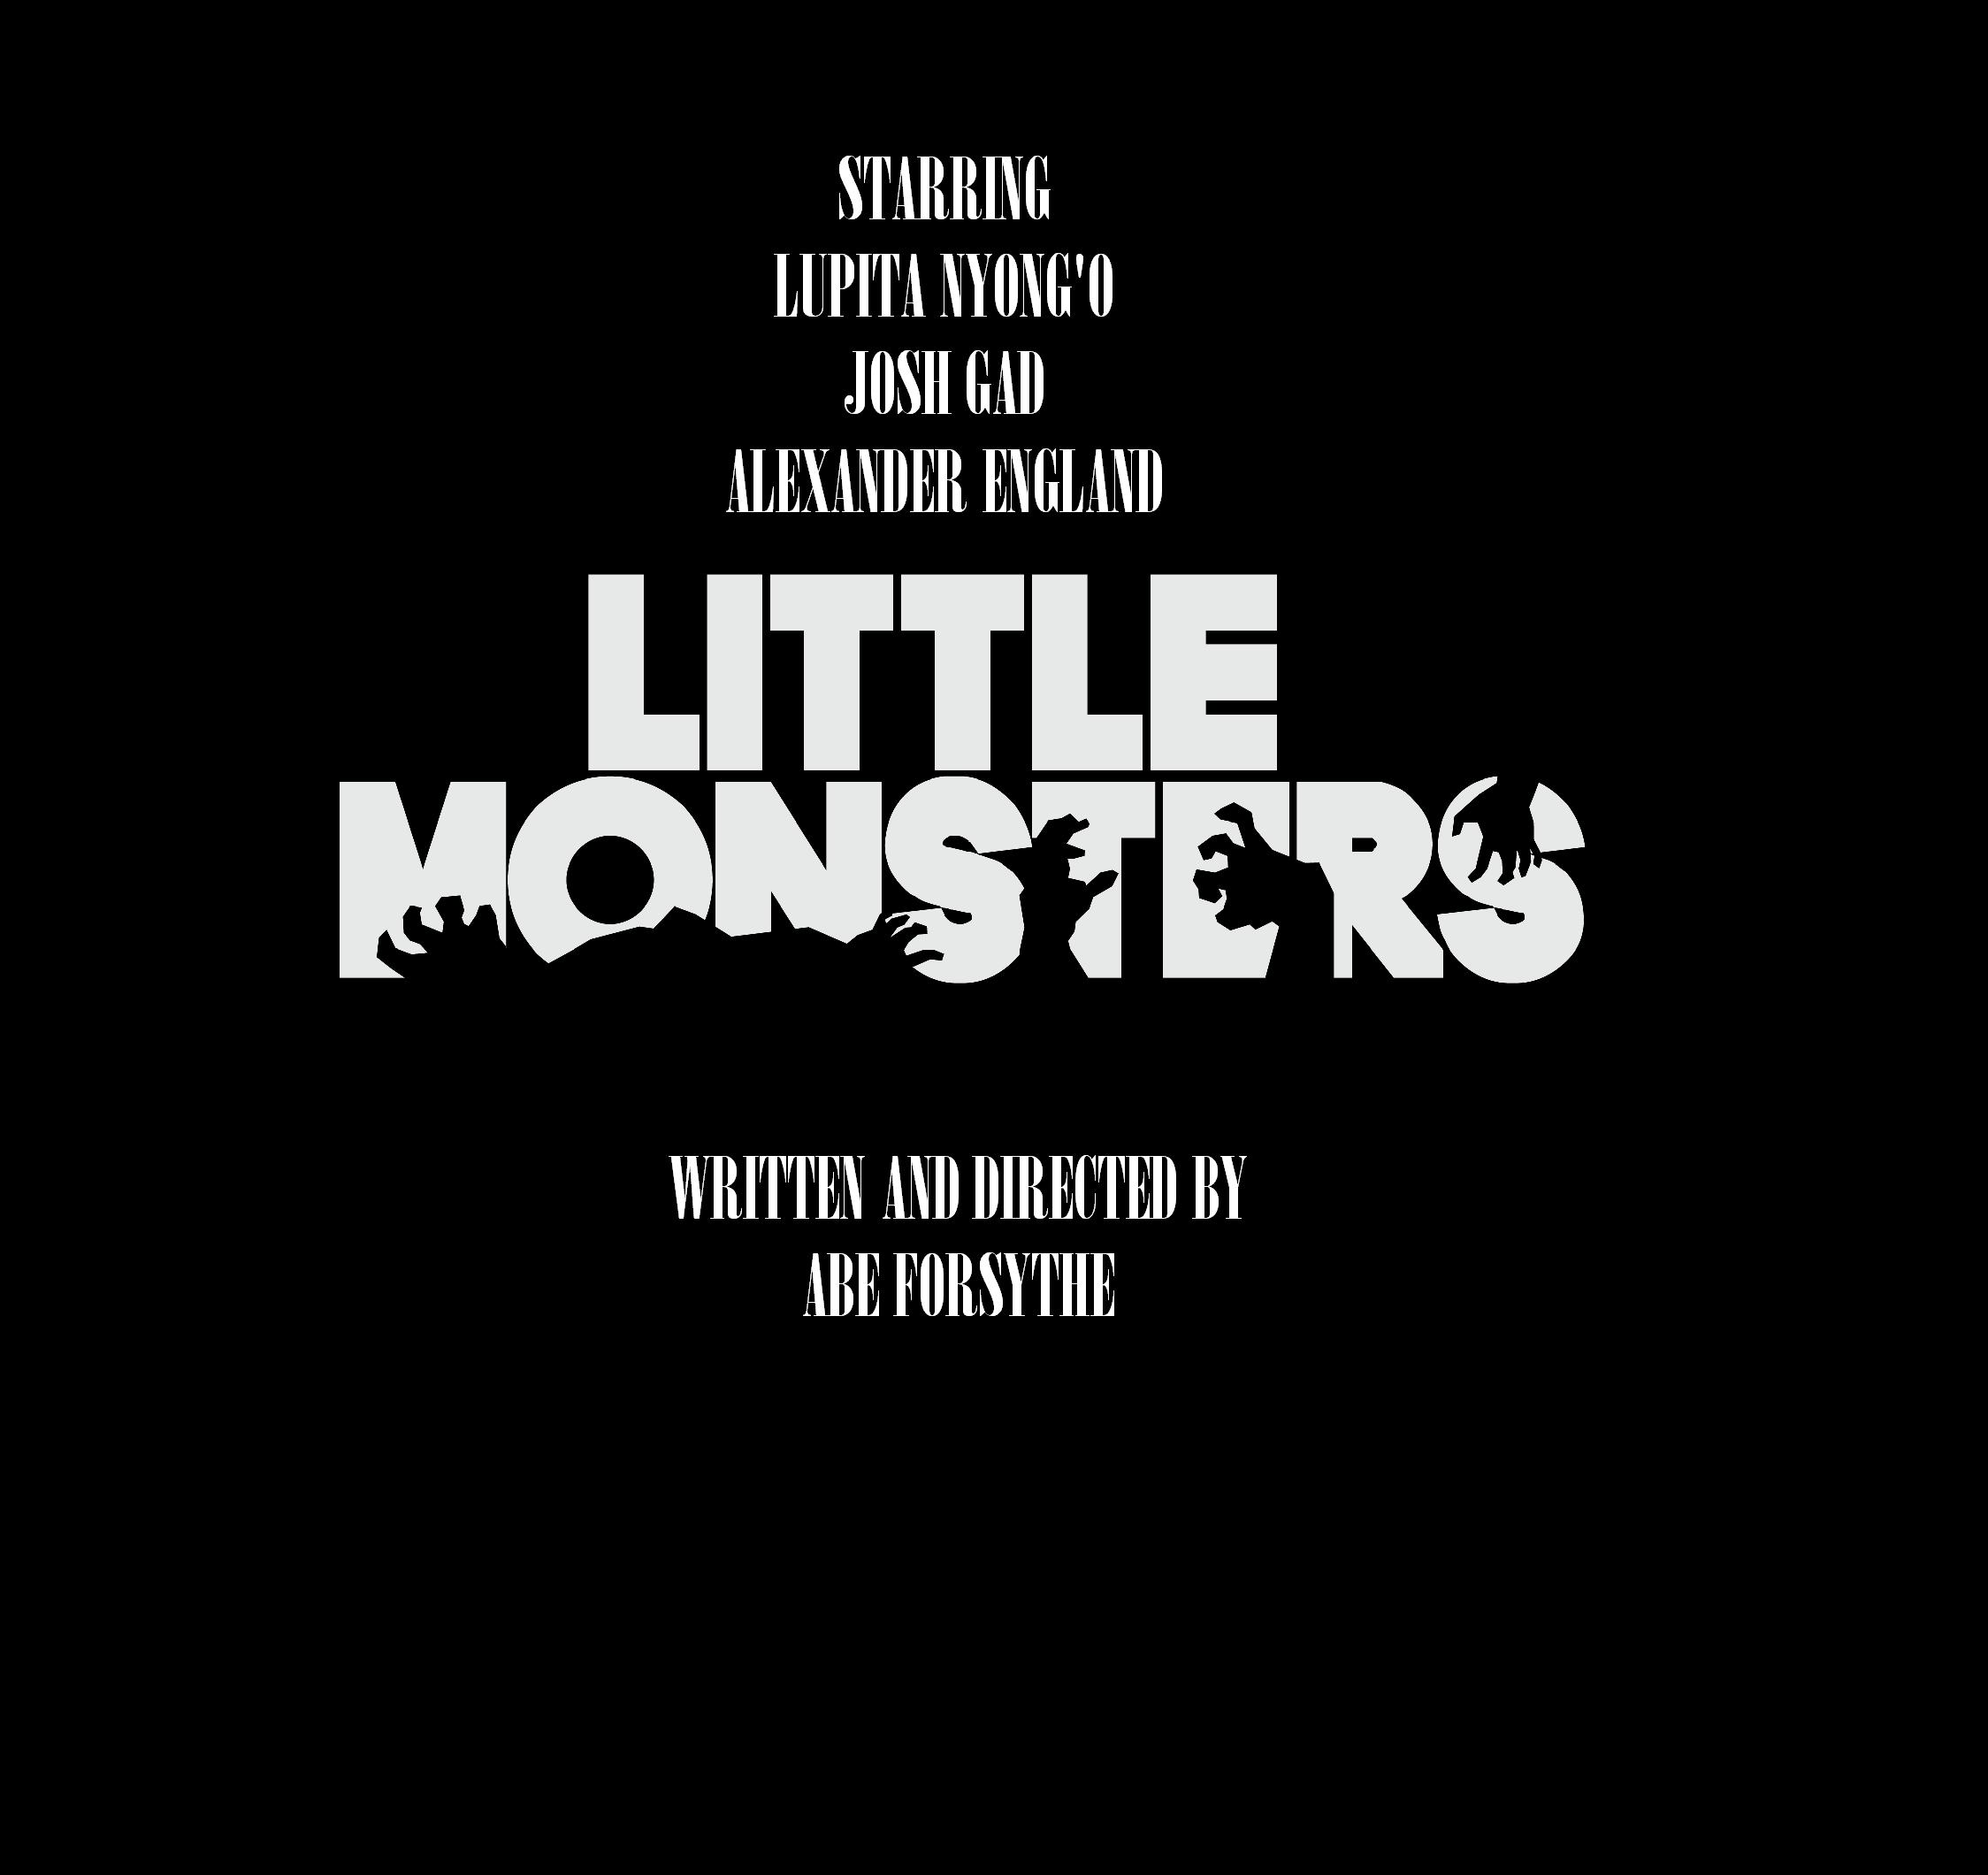 Download Filme Little Monsters Baixar Torrent BluRay 1080p 720p MP4